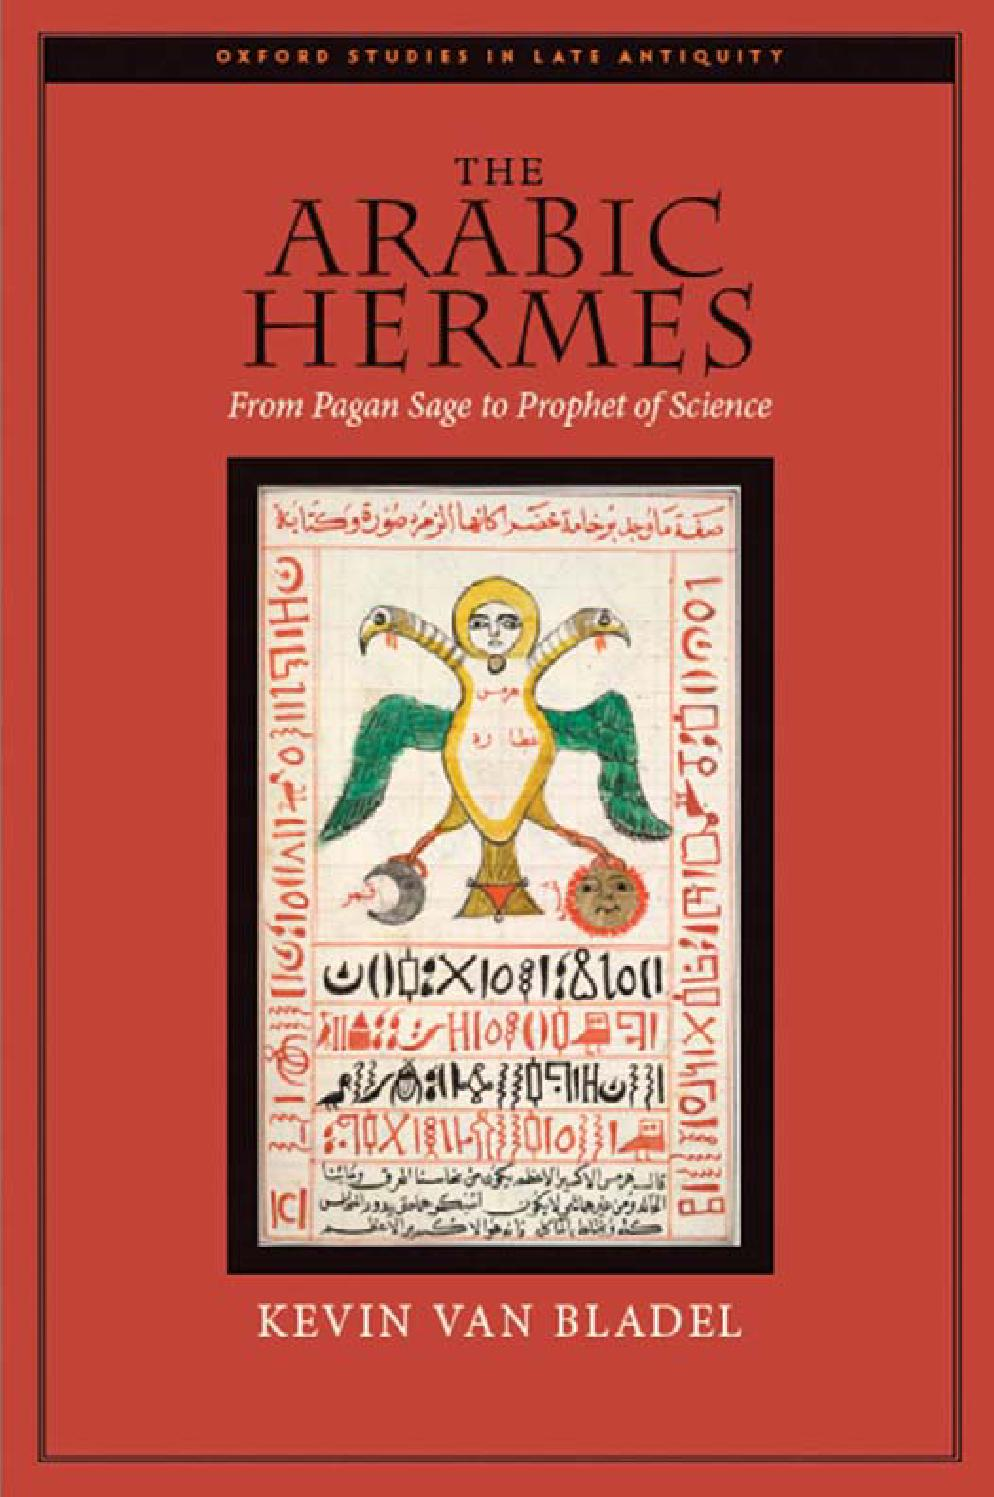 The Spirits of Hermes. Riddle in each bottle